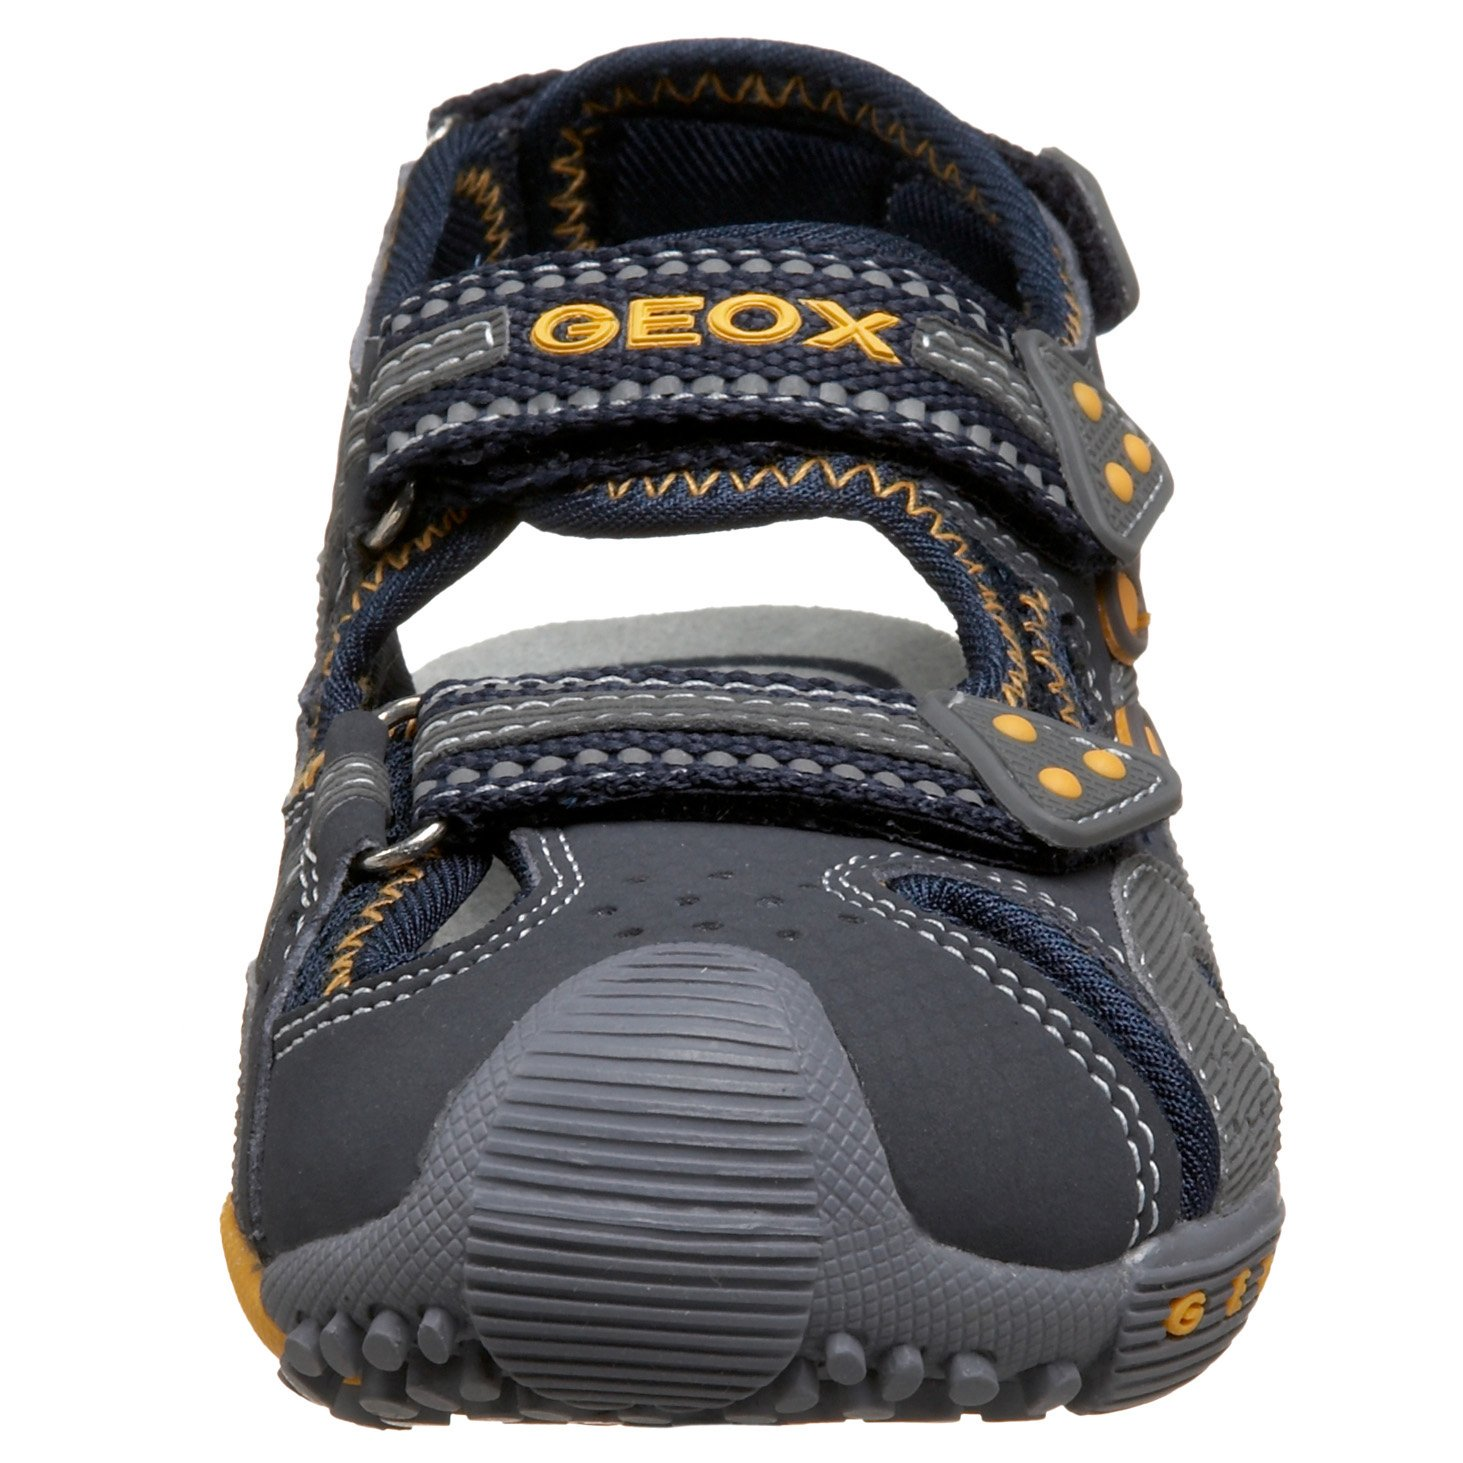 Geox Little Kid//Big Kid Hawk Sandal